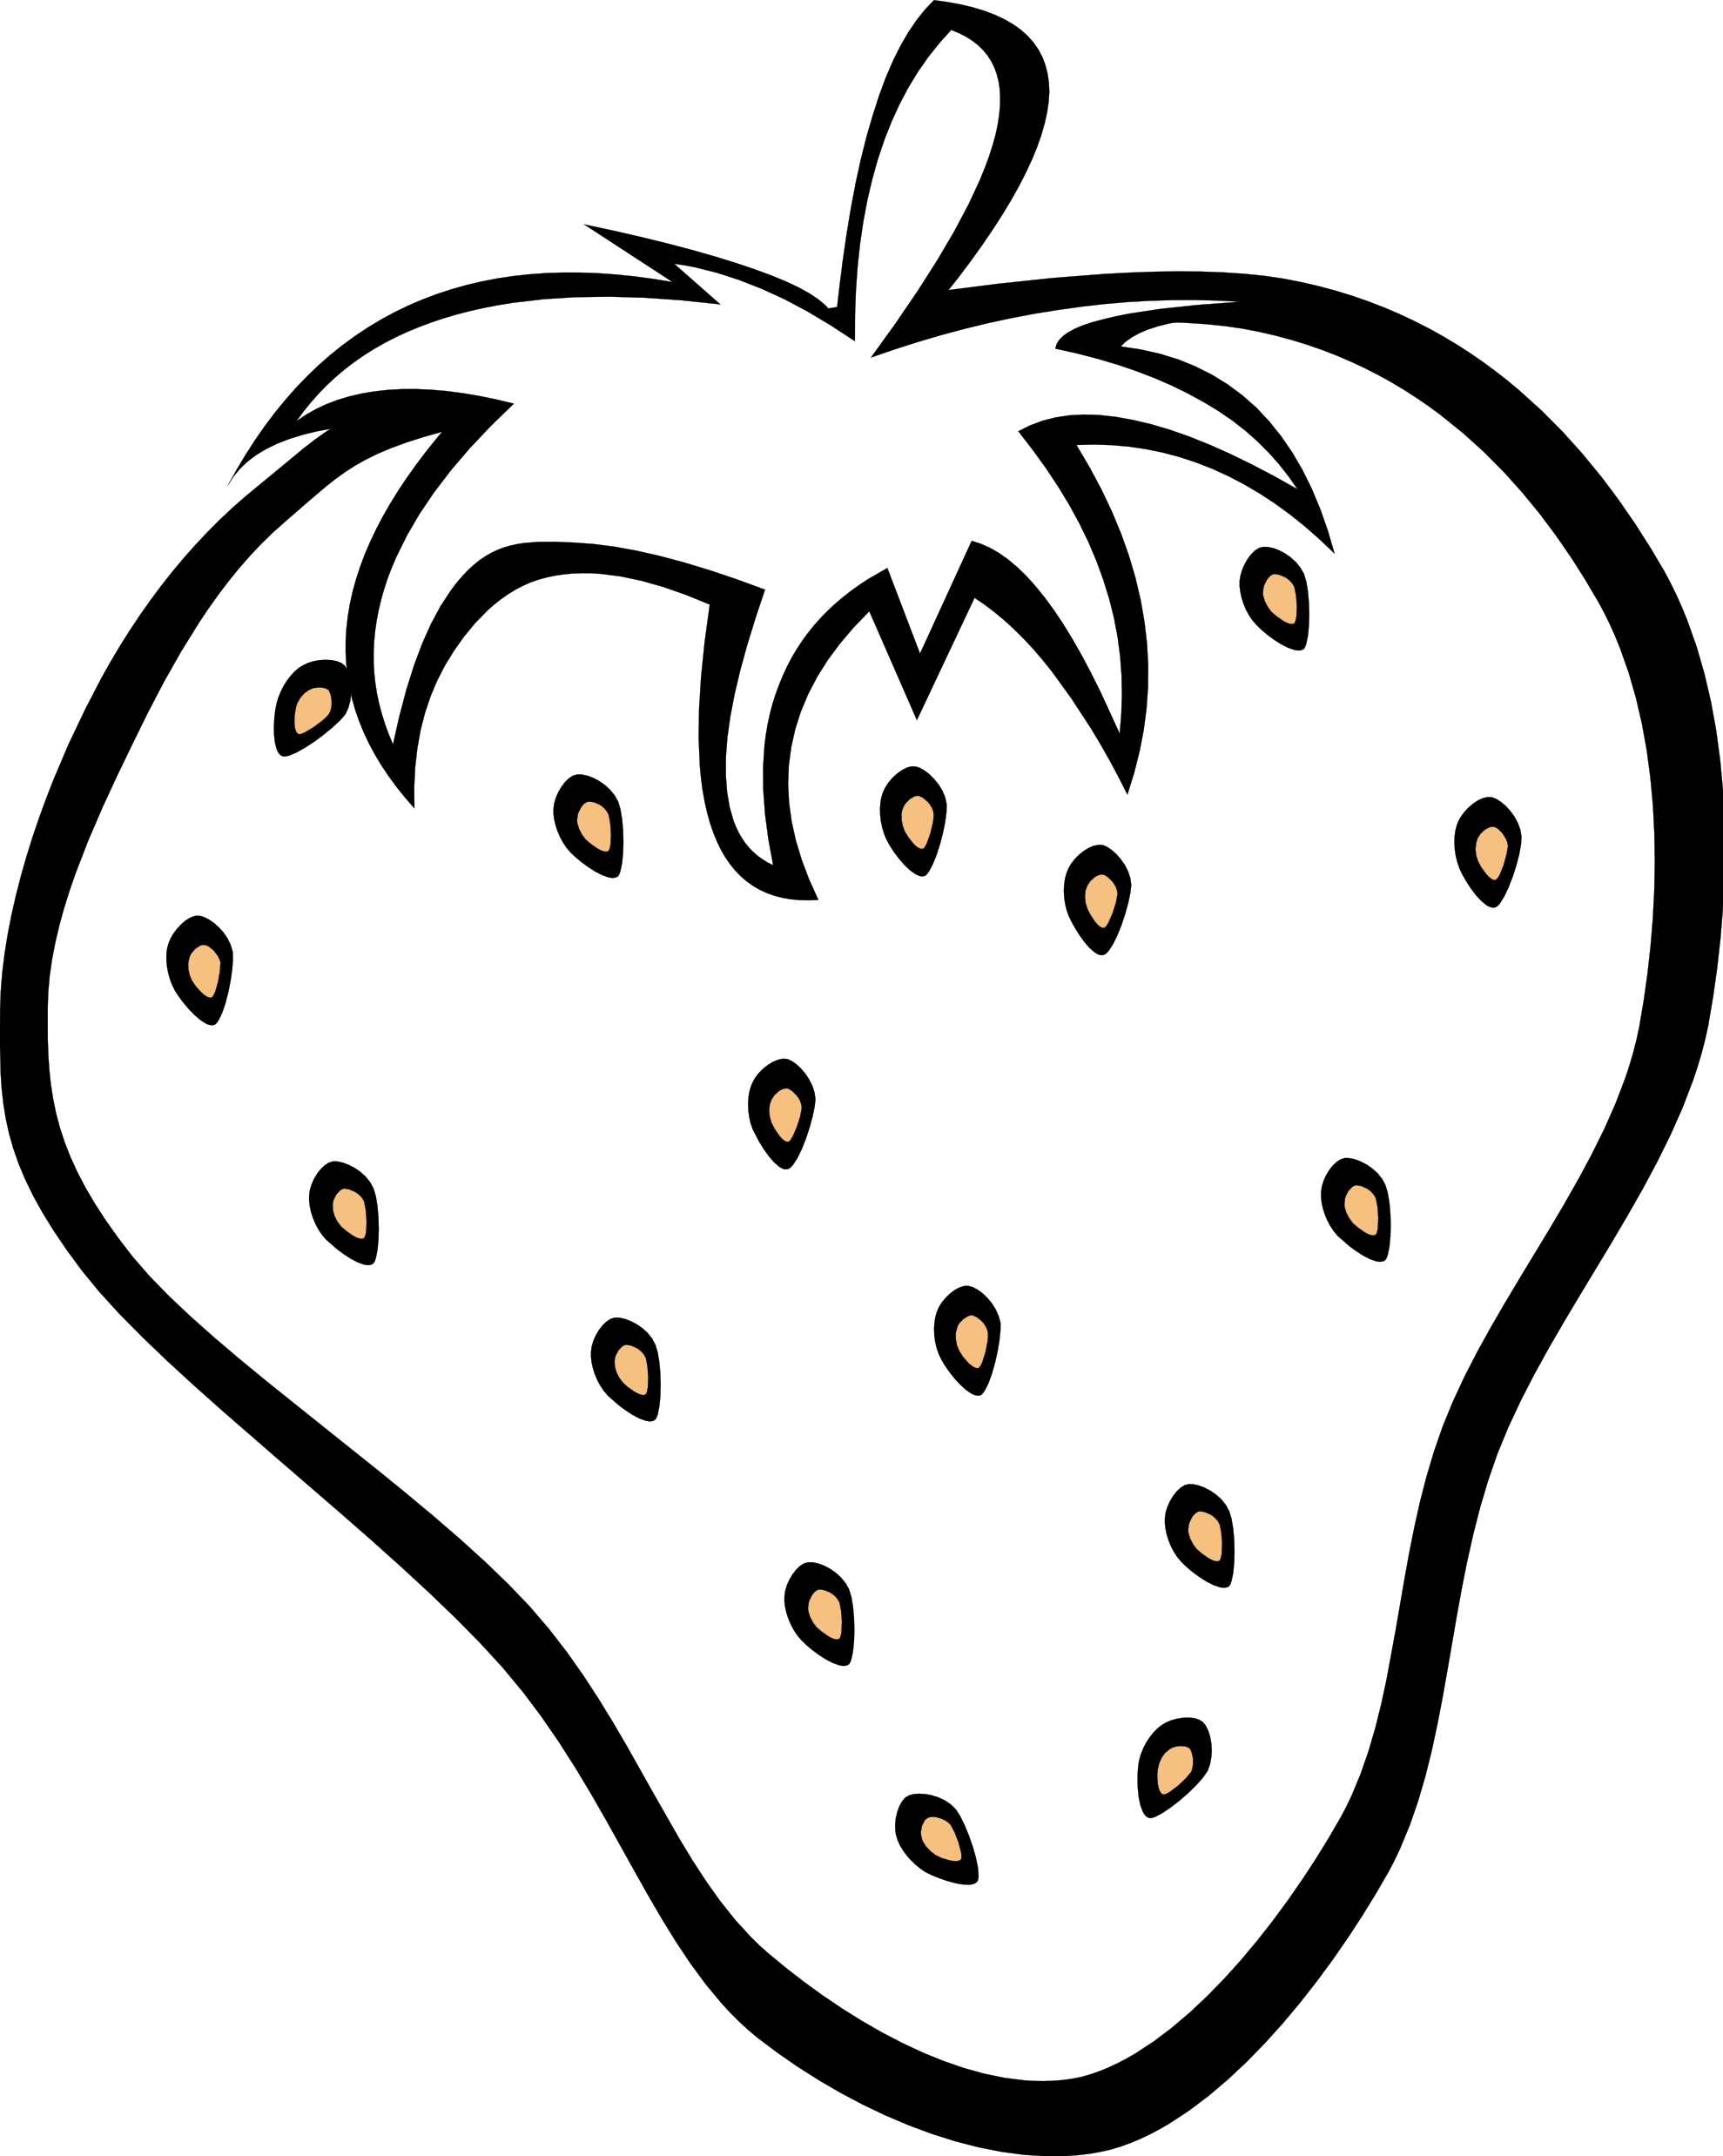 Apple clipart black and white free jpg black and white stock Apple Animated Clip Art. Awesome Clip Art Graphic Of A Red Apple ... jpg black and white stock